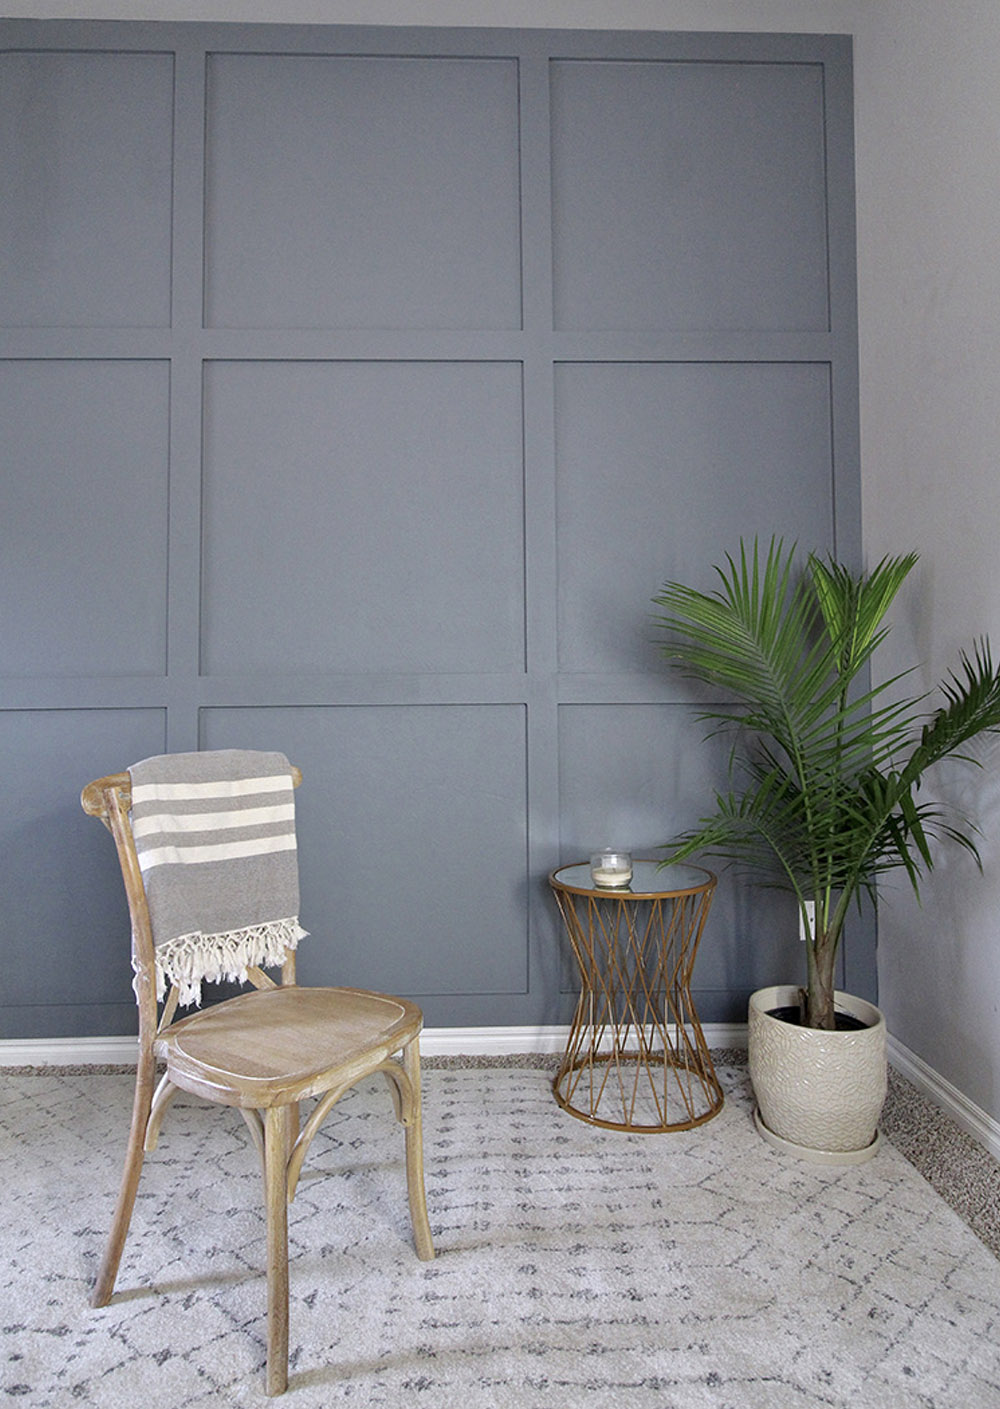 A room decorated with a chair, table, and greenery in front of a painted accent wall.